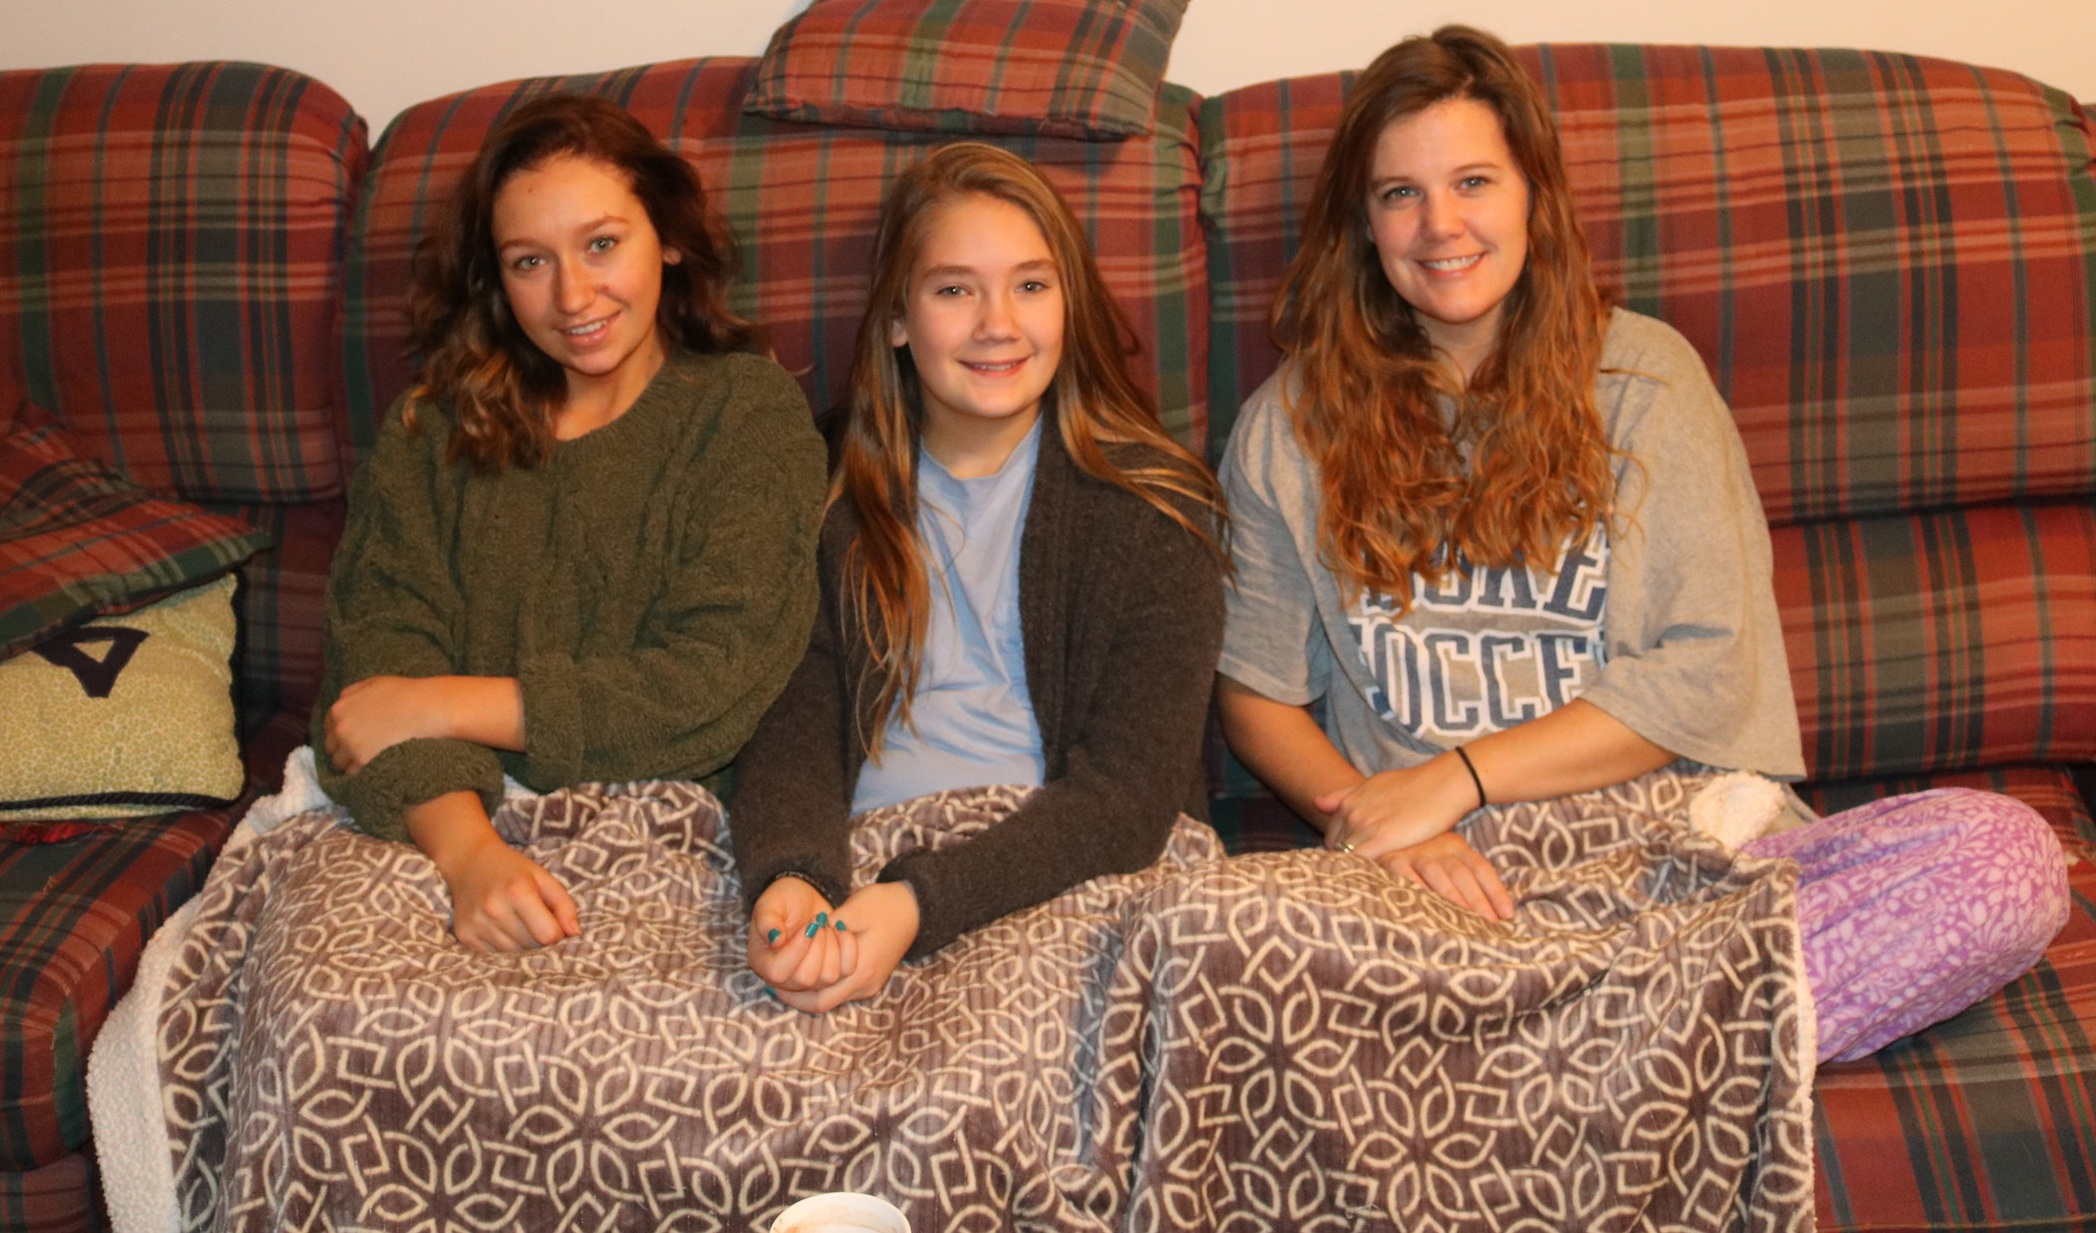 Maryellyn and the girls sharing the couch and a blanket on Christmas morning